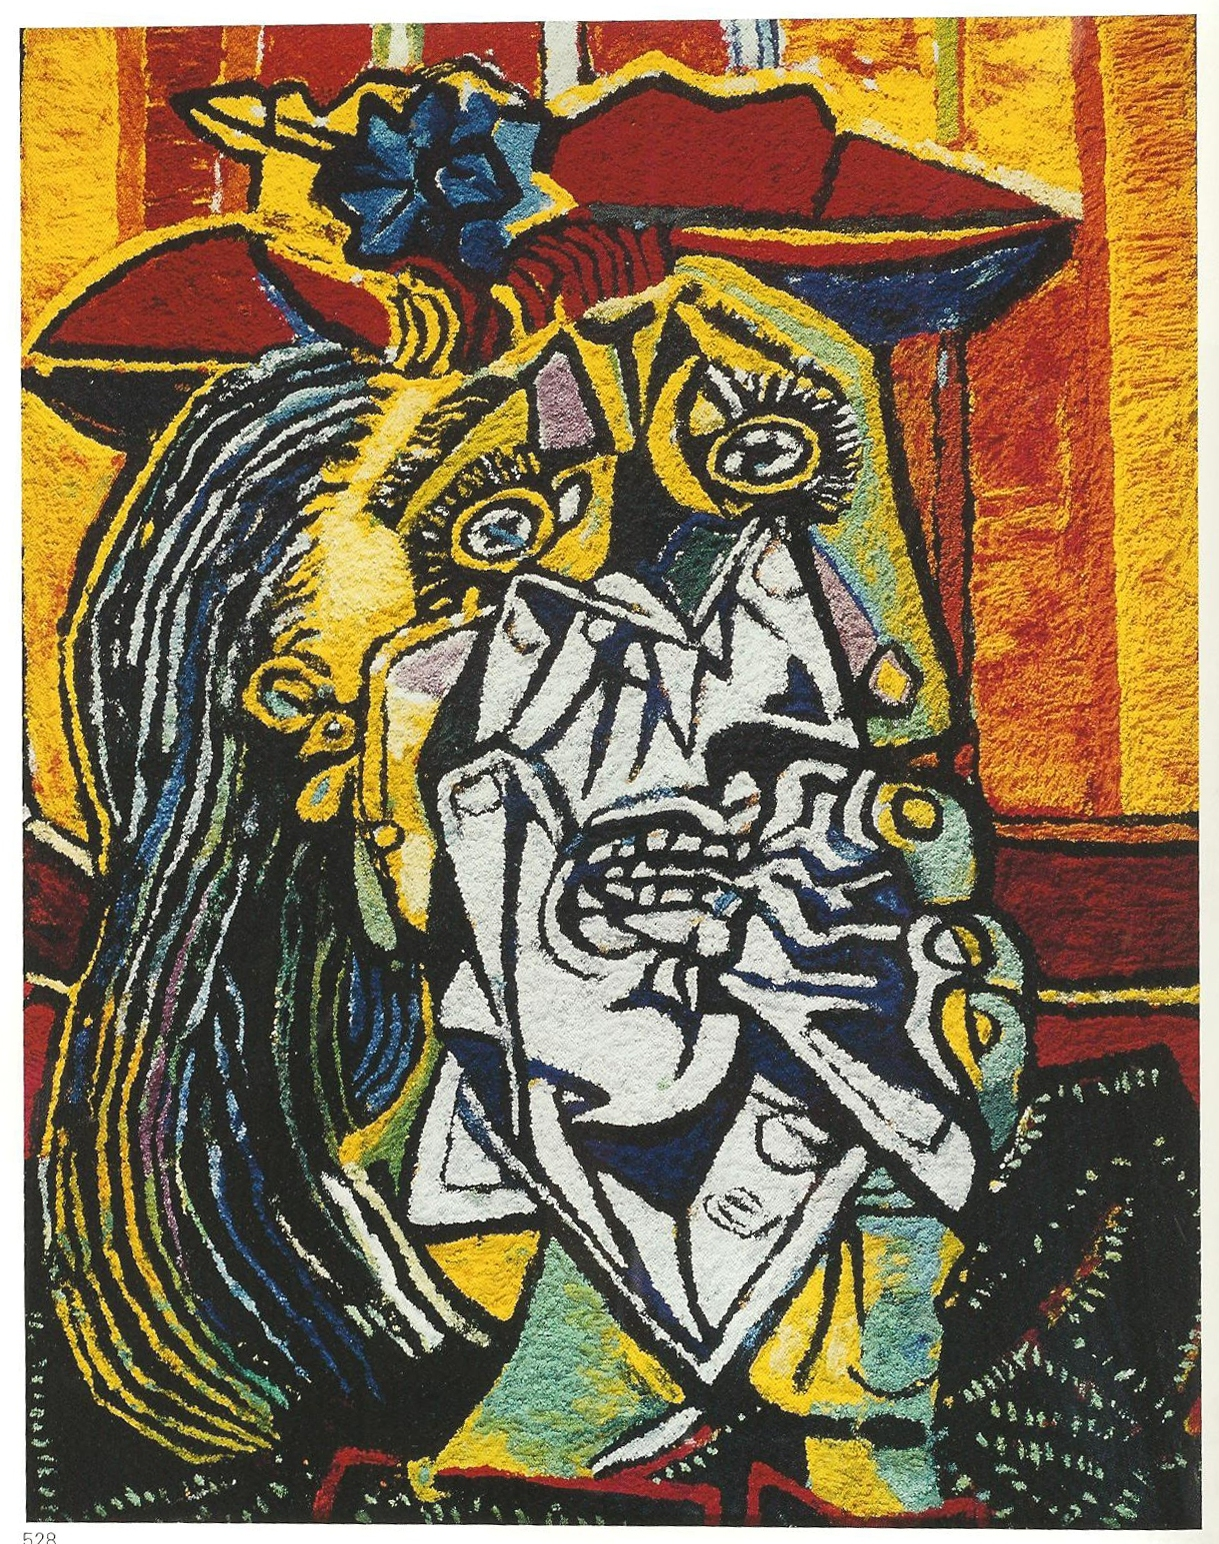 VIK MUNIZ Weeping Woman, After Picasso (From Pictures of Pigment), 2007 Stampa cromogenica 226.1 x 180.1 cm COURTESY Vitart SA